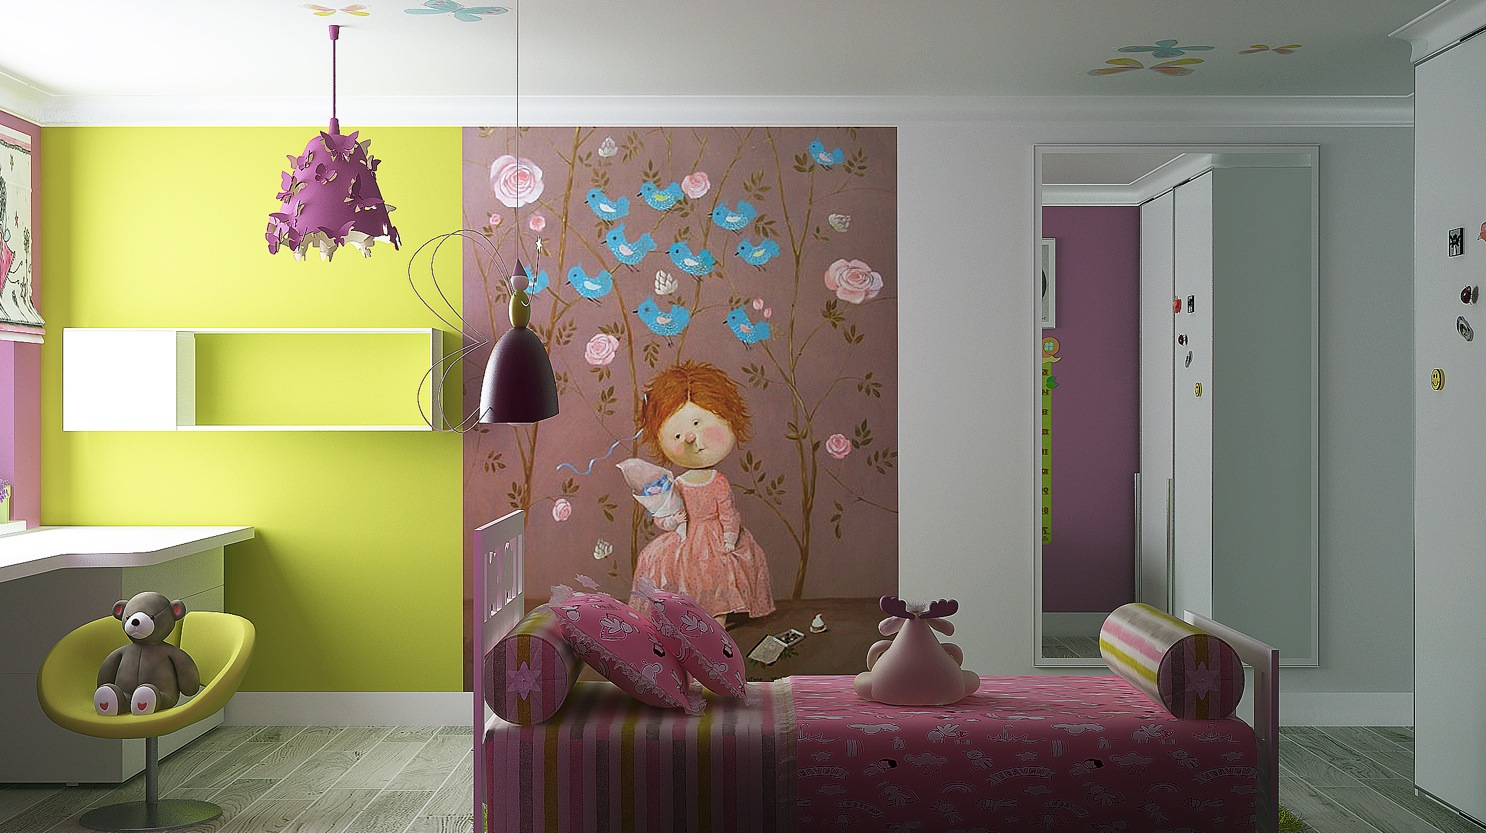 Bedroom wall paint designs for girls - Surprising Wall Mural To Decorate Bedroom For Girls With Unique Pendant Lamps